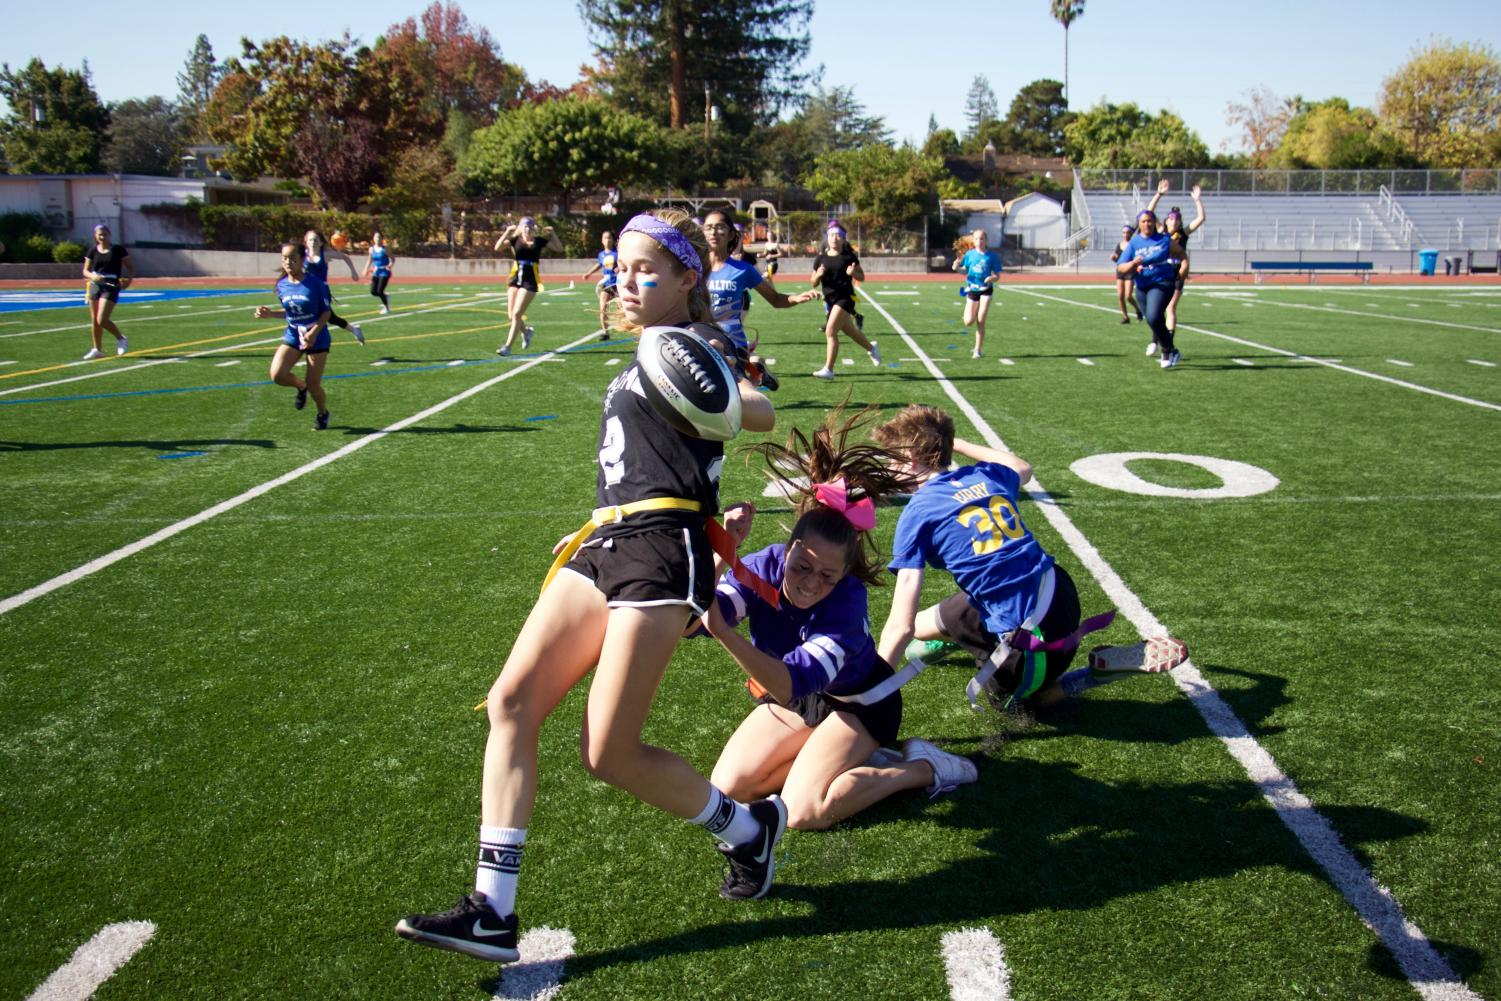 Evelyn Baher-Murphy dodges around two freshmen and makes her way up the sideline in Friday's Girls Flag Football final.